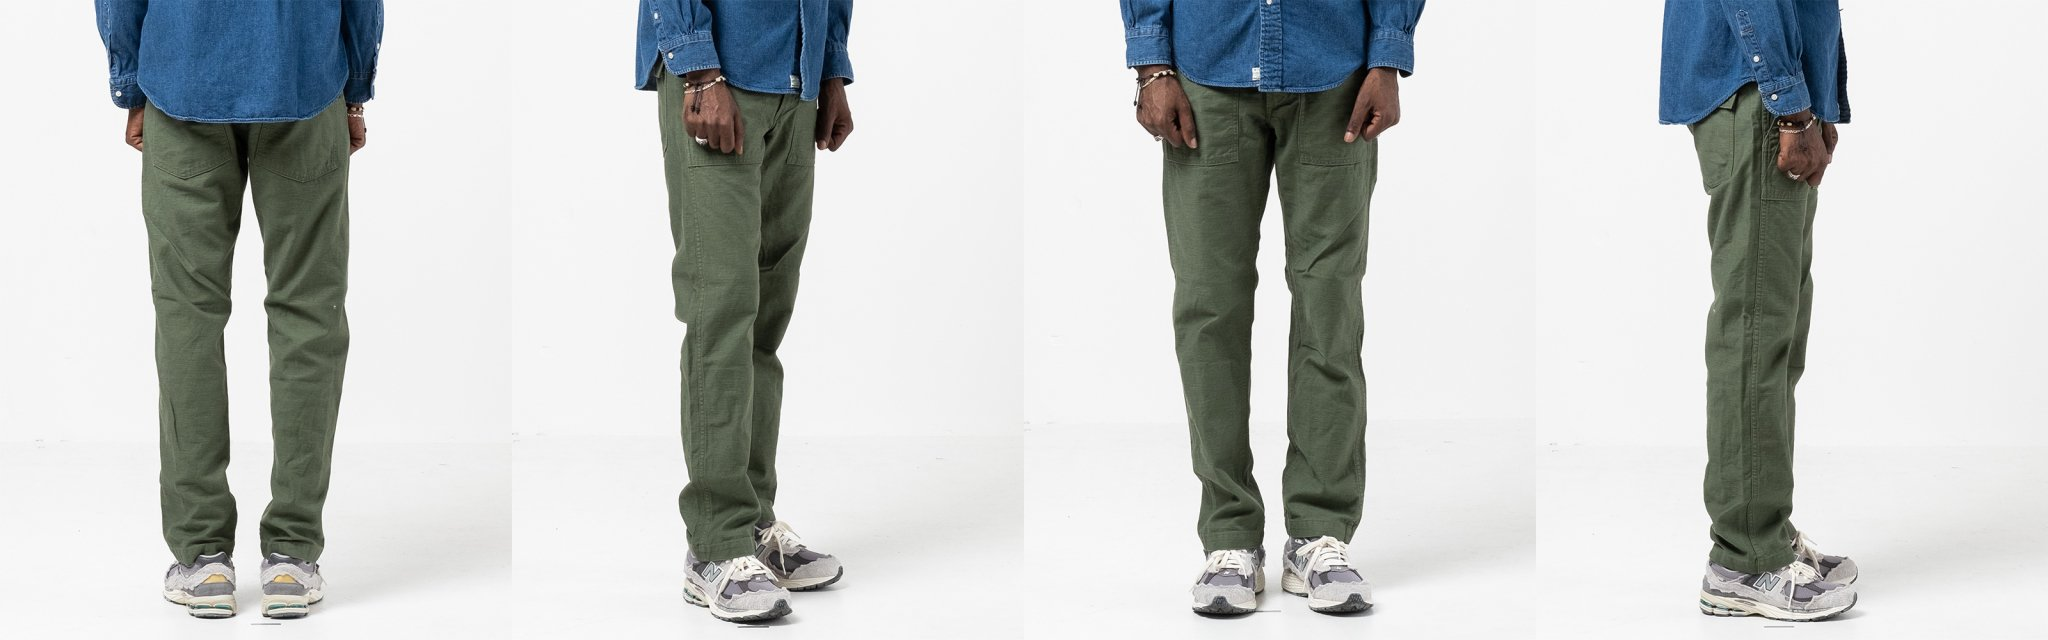 orslow us army slim fit fatigue pants green